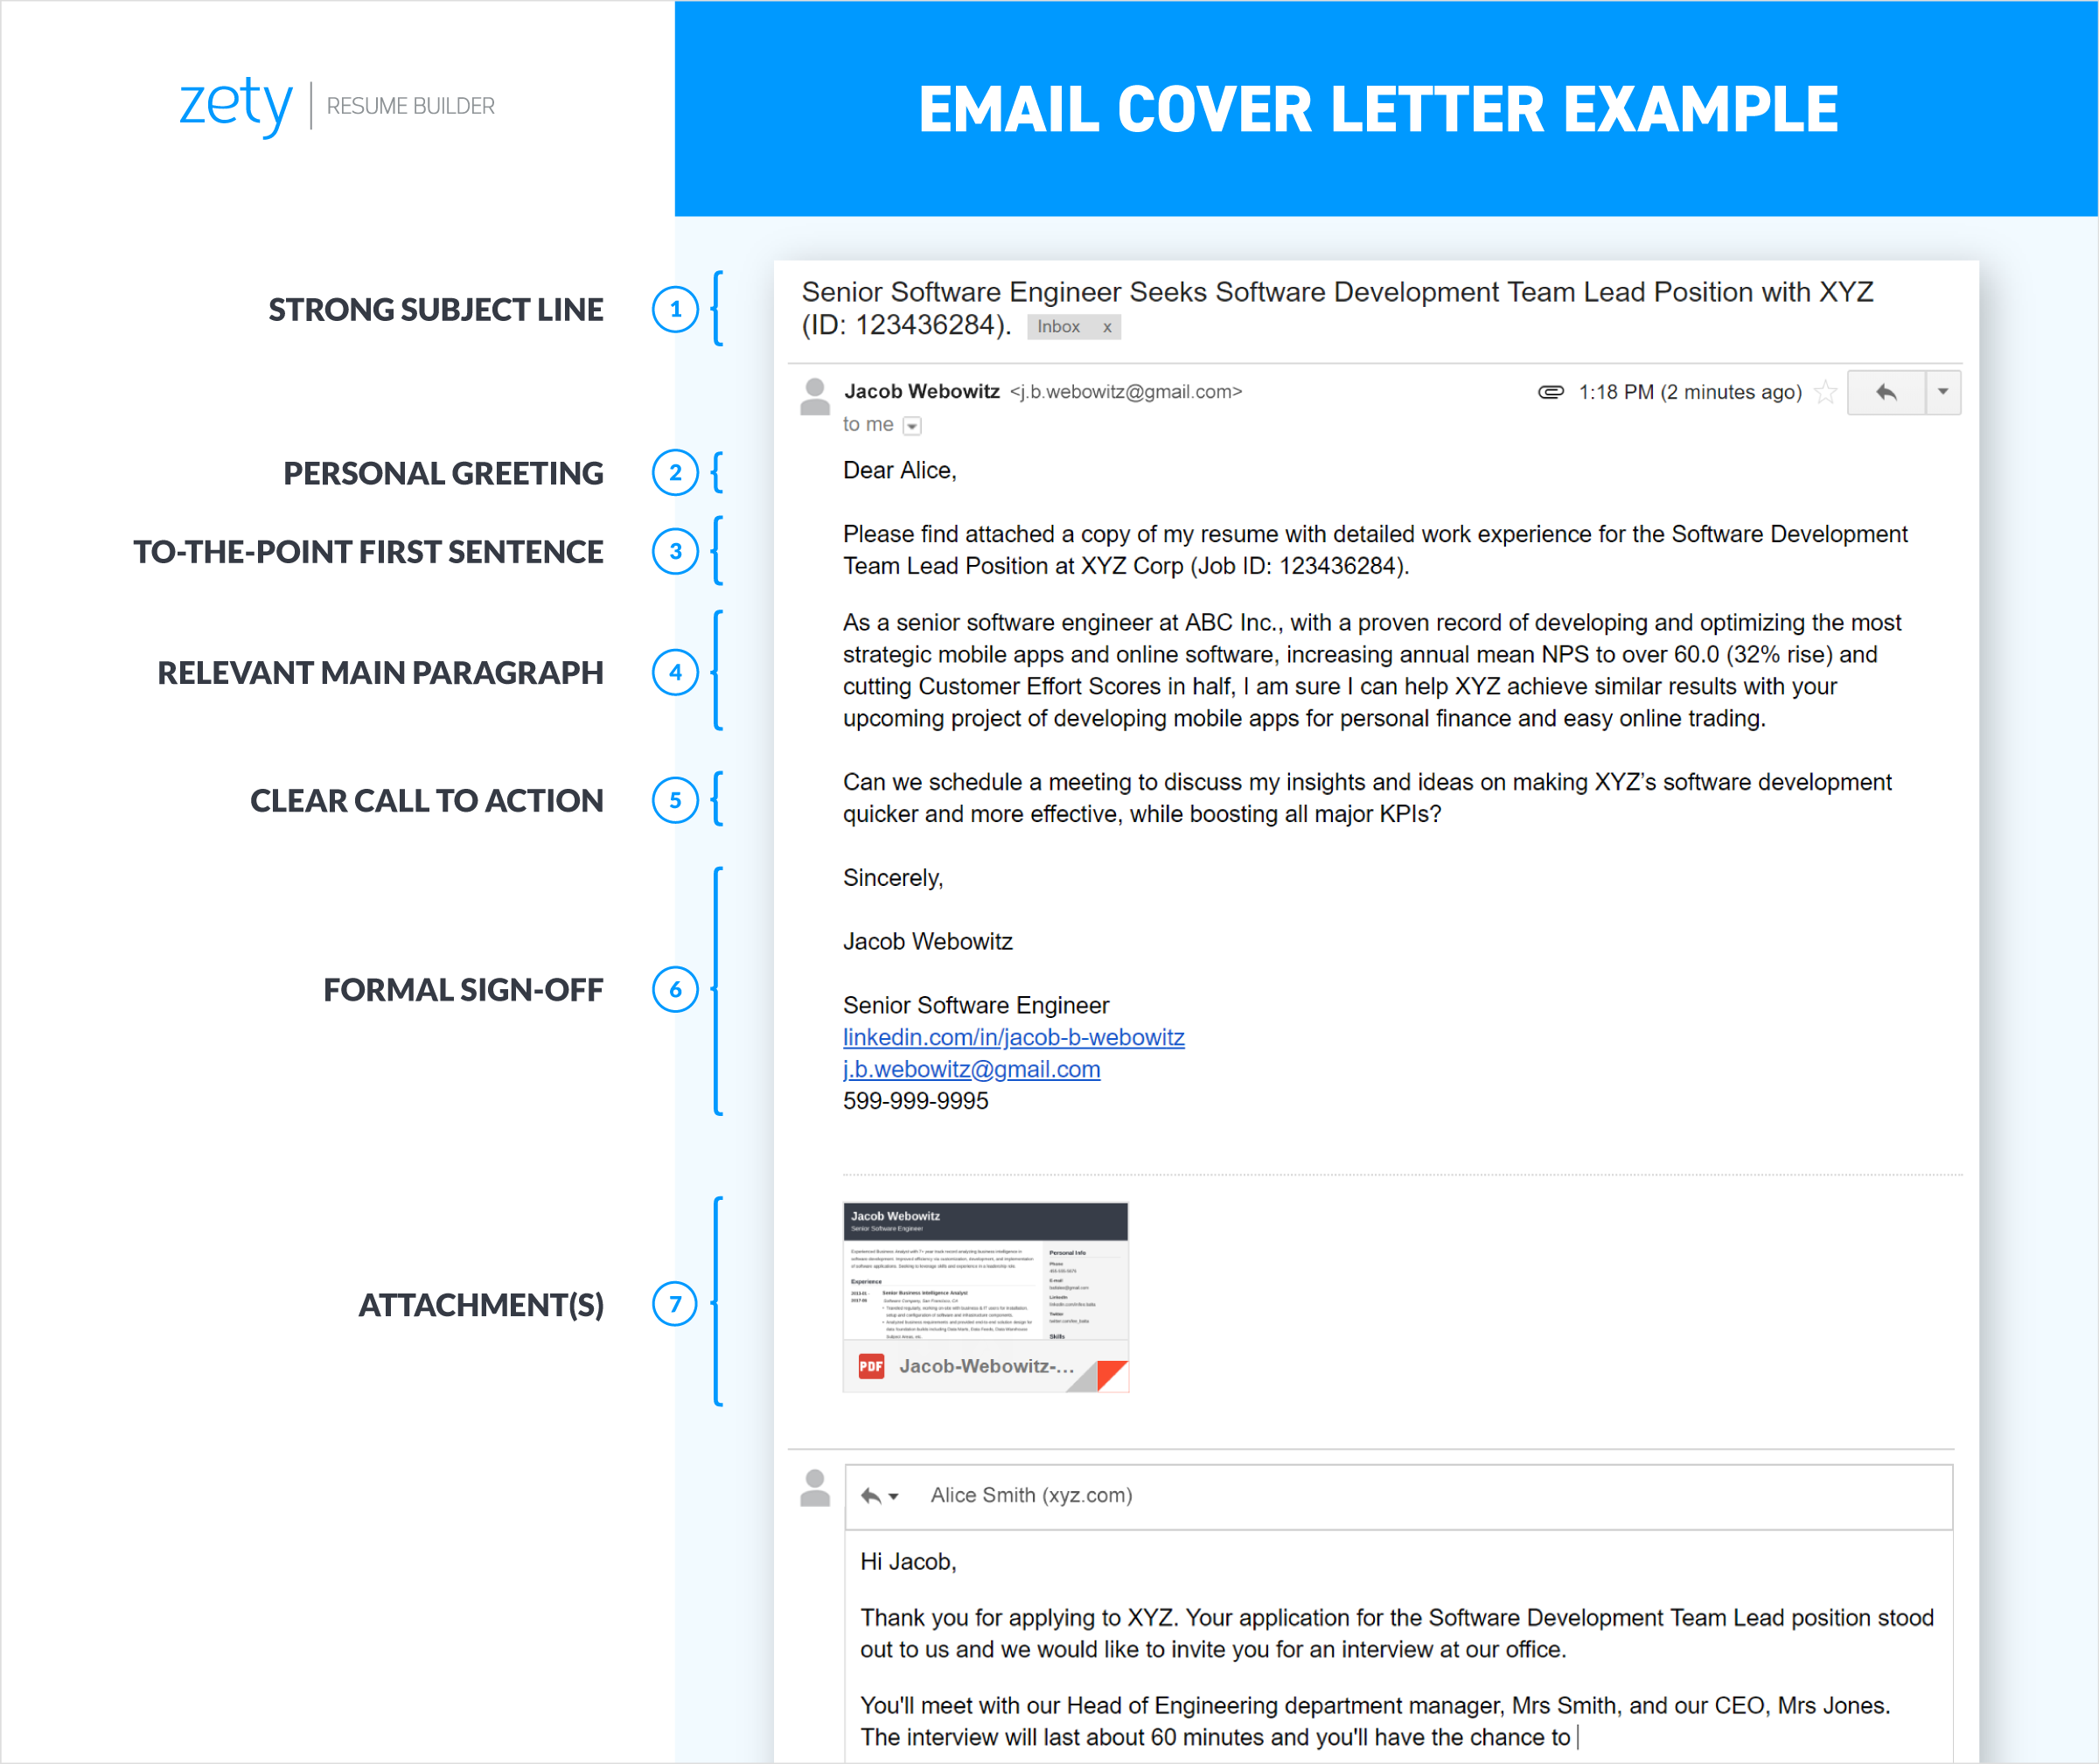 Email Cover Letter Sample Proper Format 20 Tips Infographic